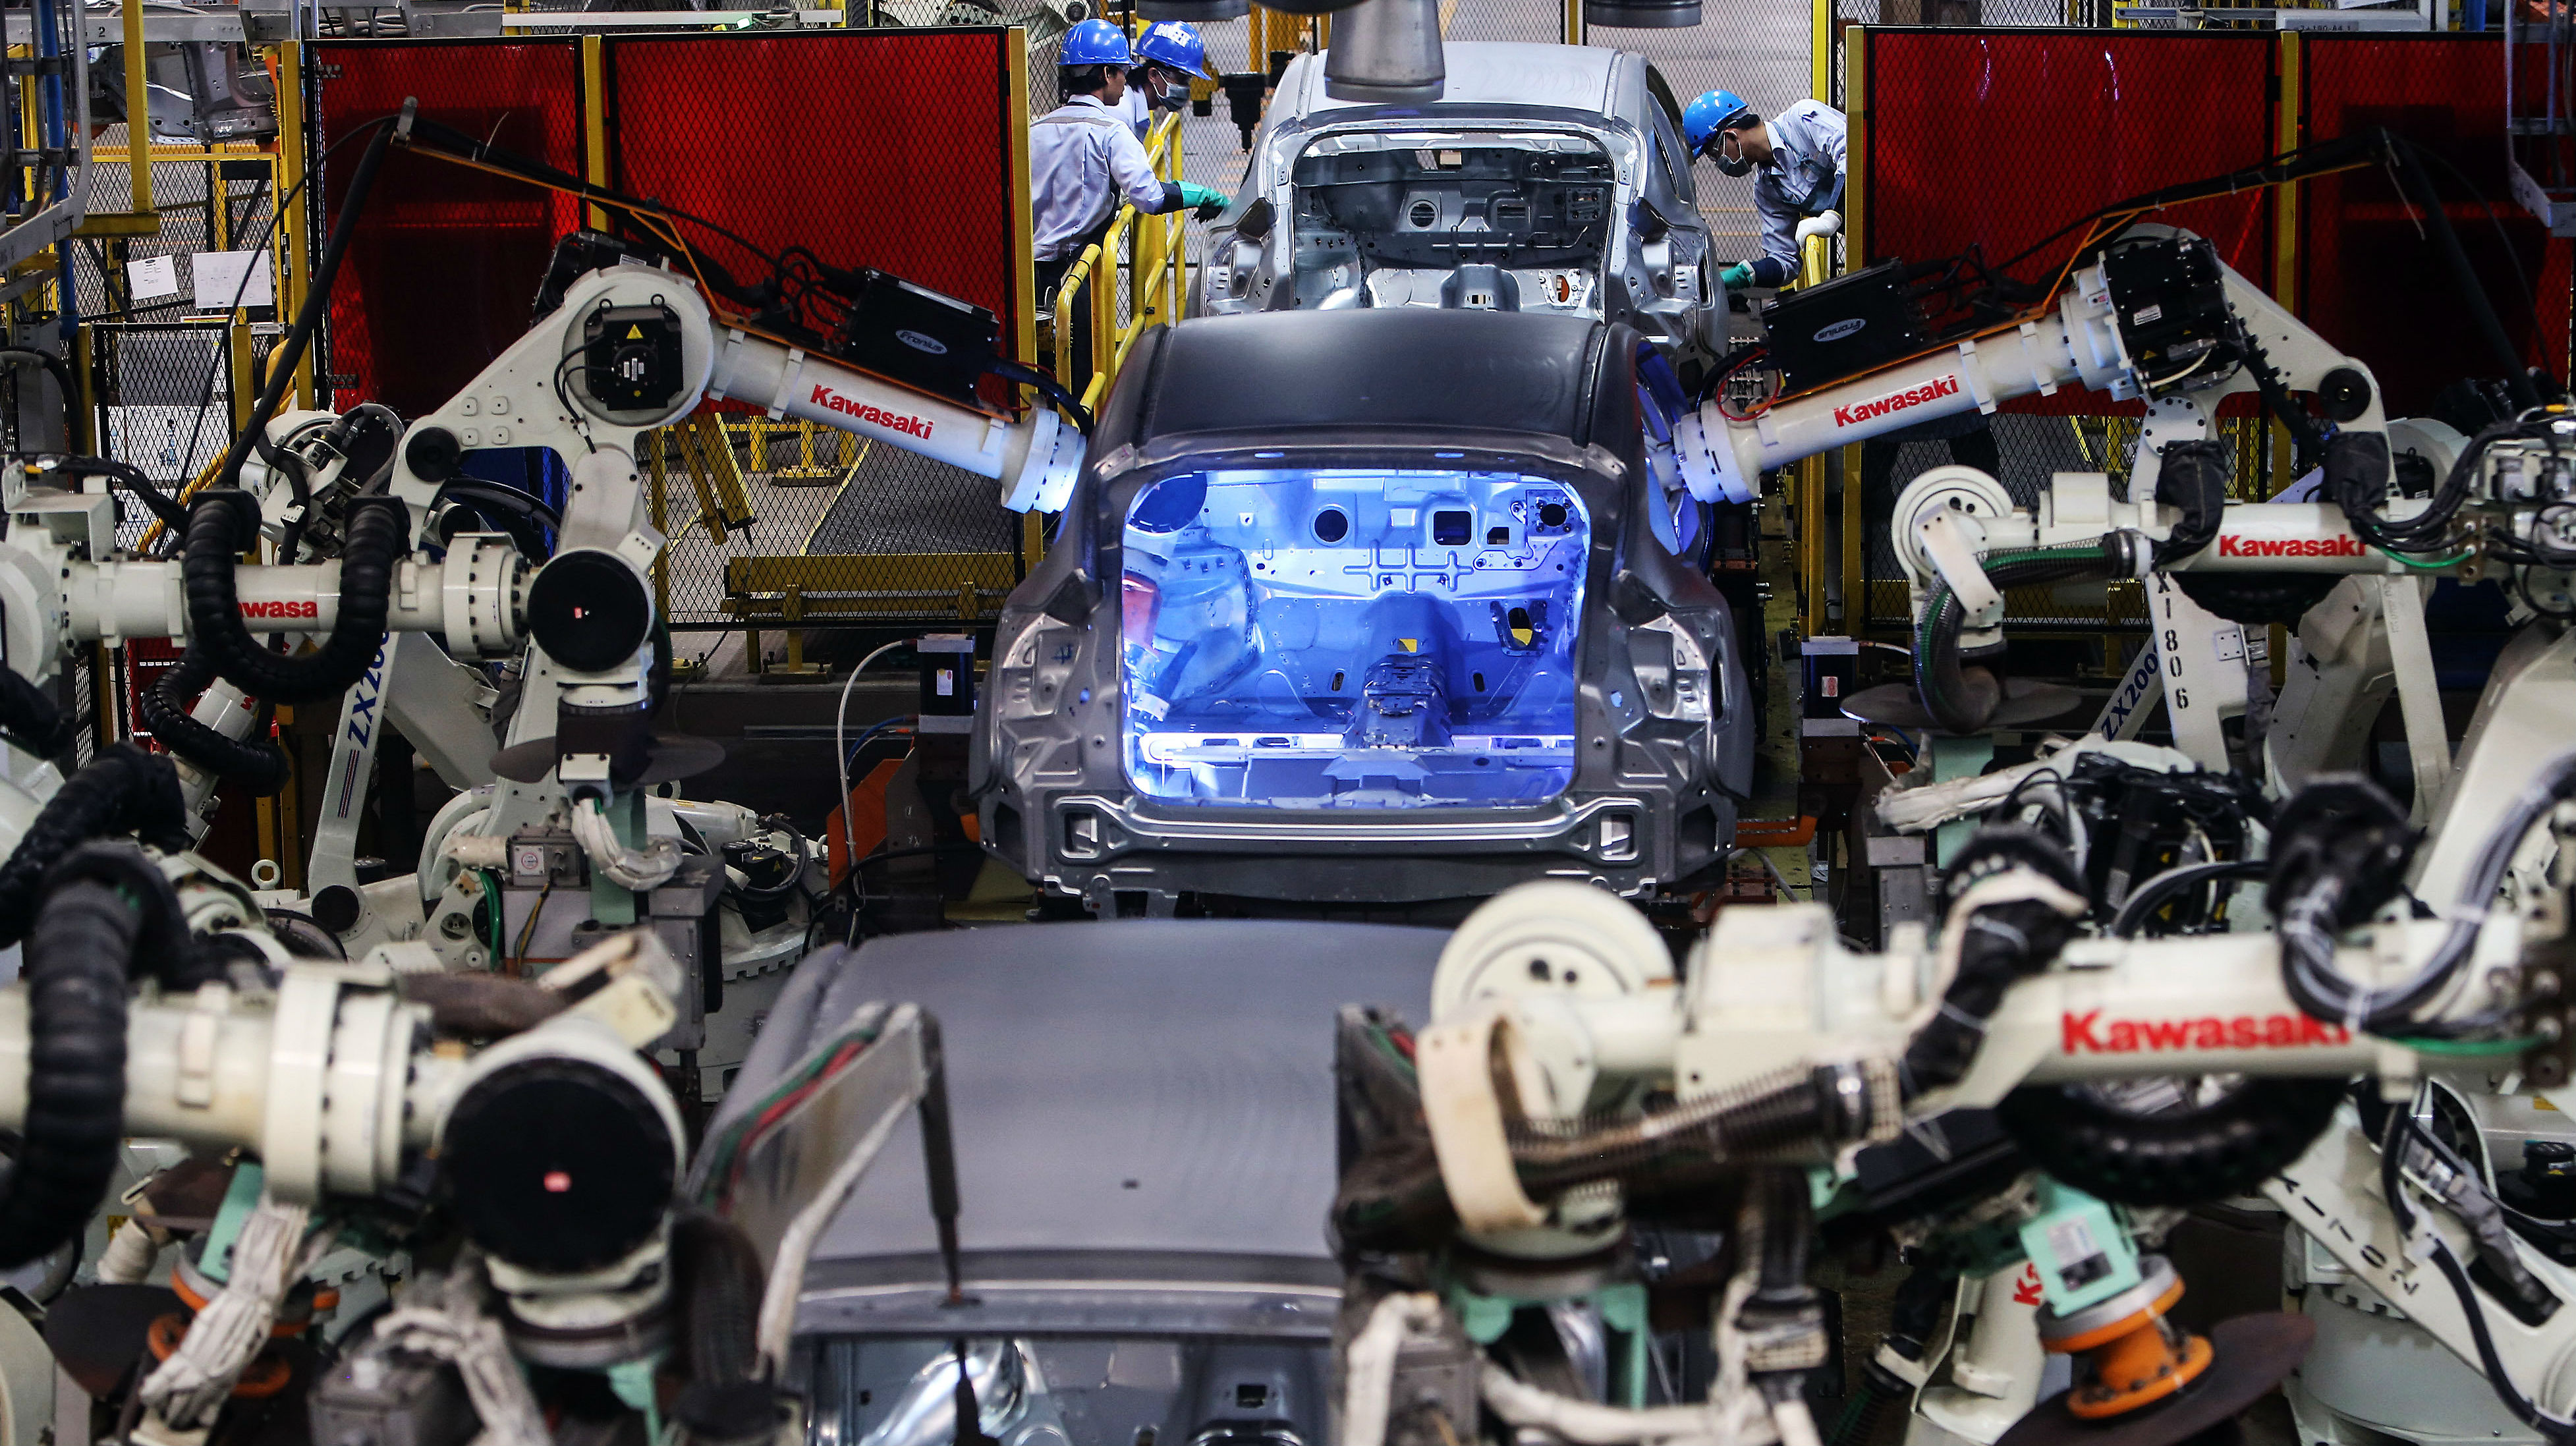 Welding robots work on cars at a Ford factory in Rayong, Thailand. What really matters is whether the jobs outside of the robot-computer economy remain valuable and in high demand. Photo: Bloomberg